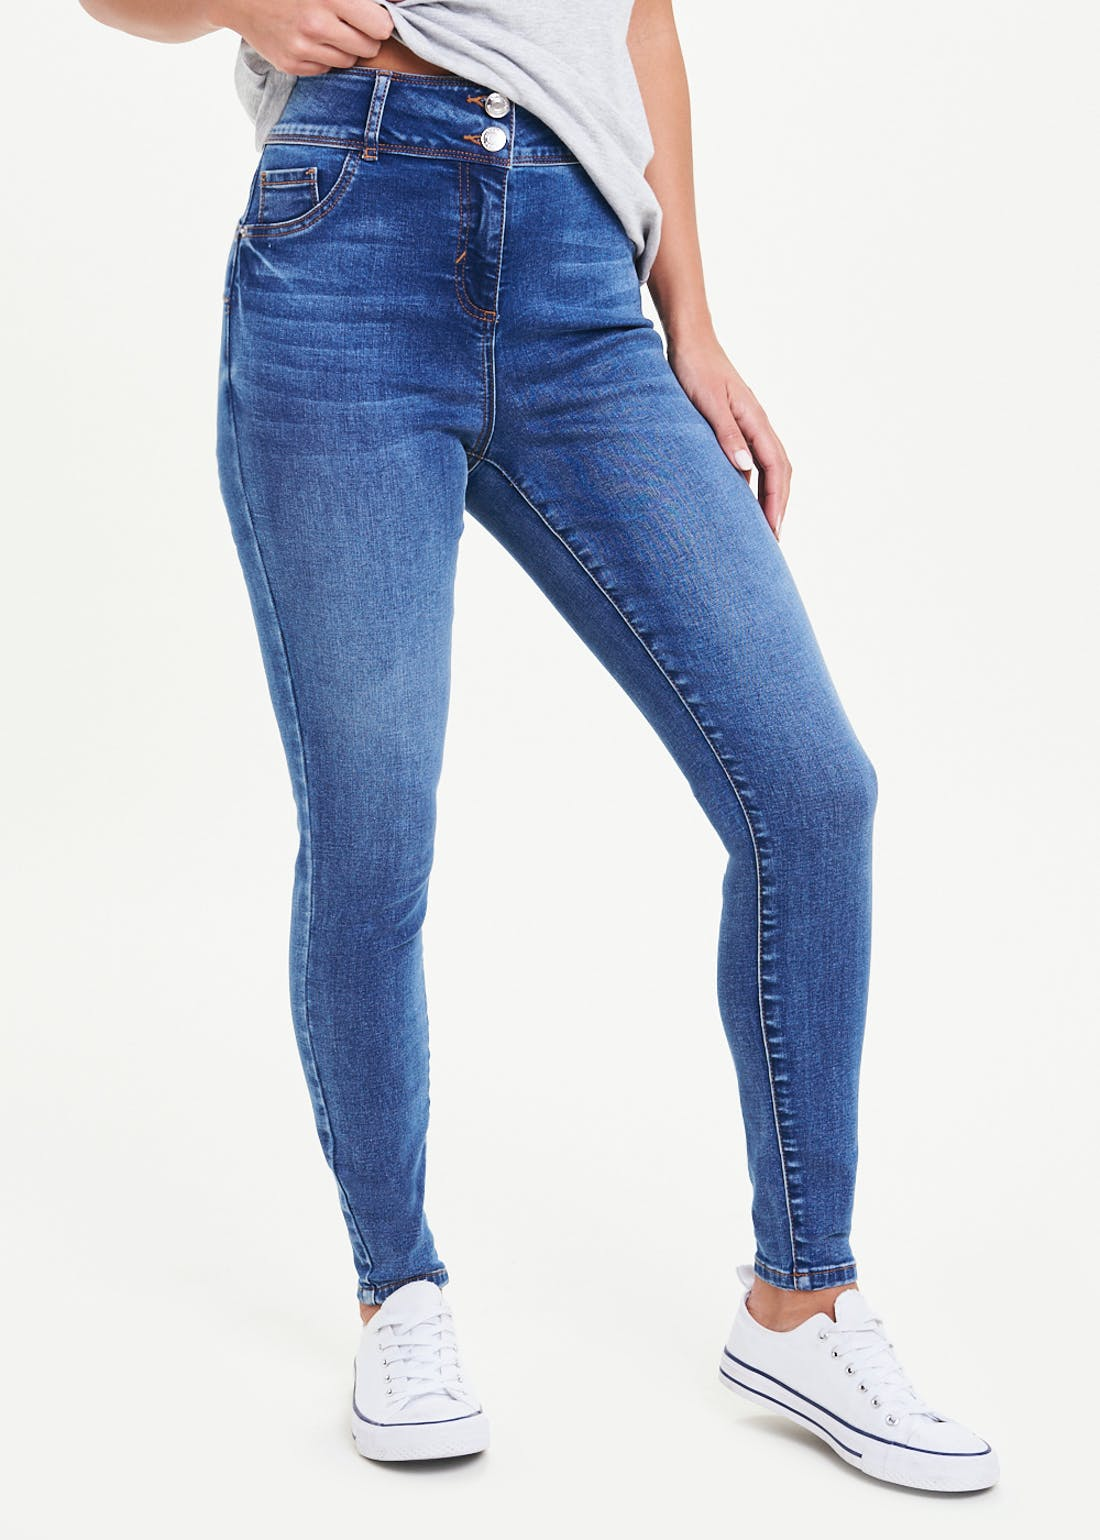 April Push Up Super Skinny Jeans